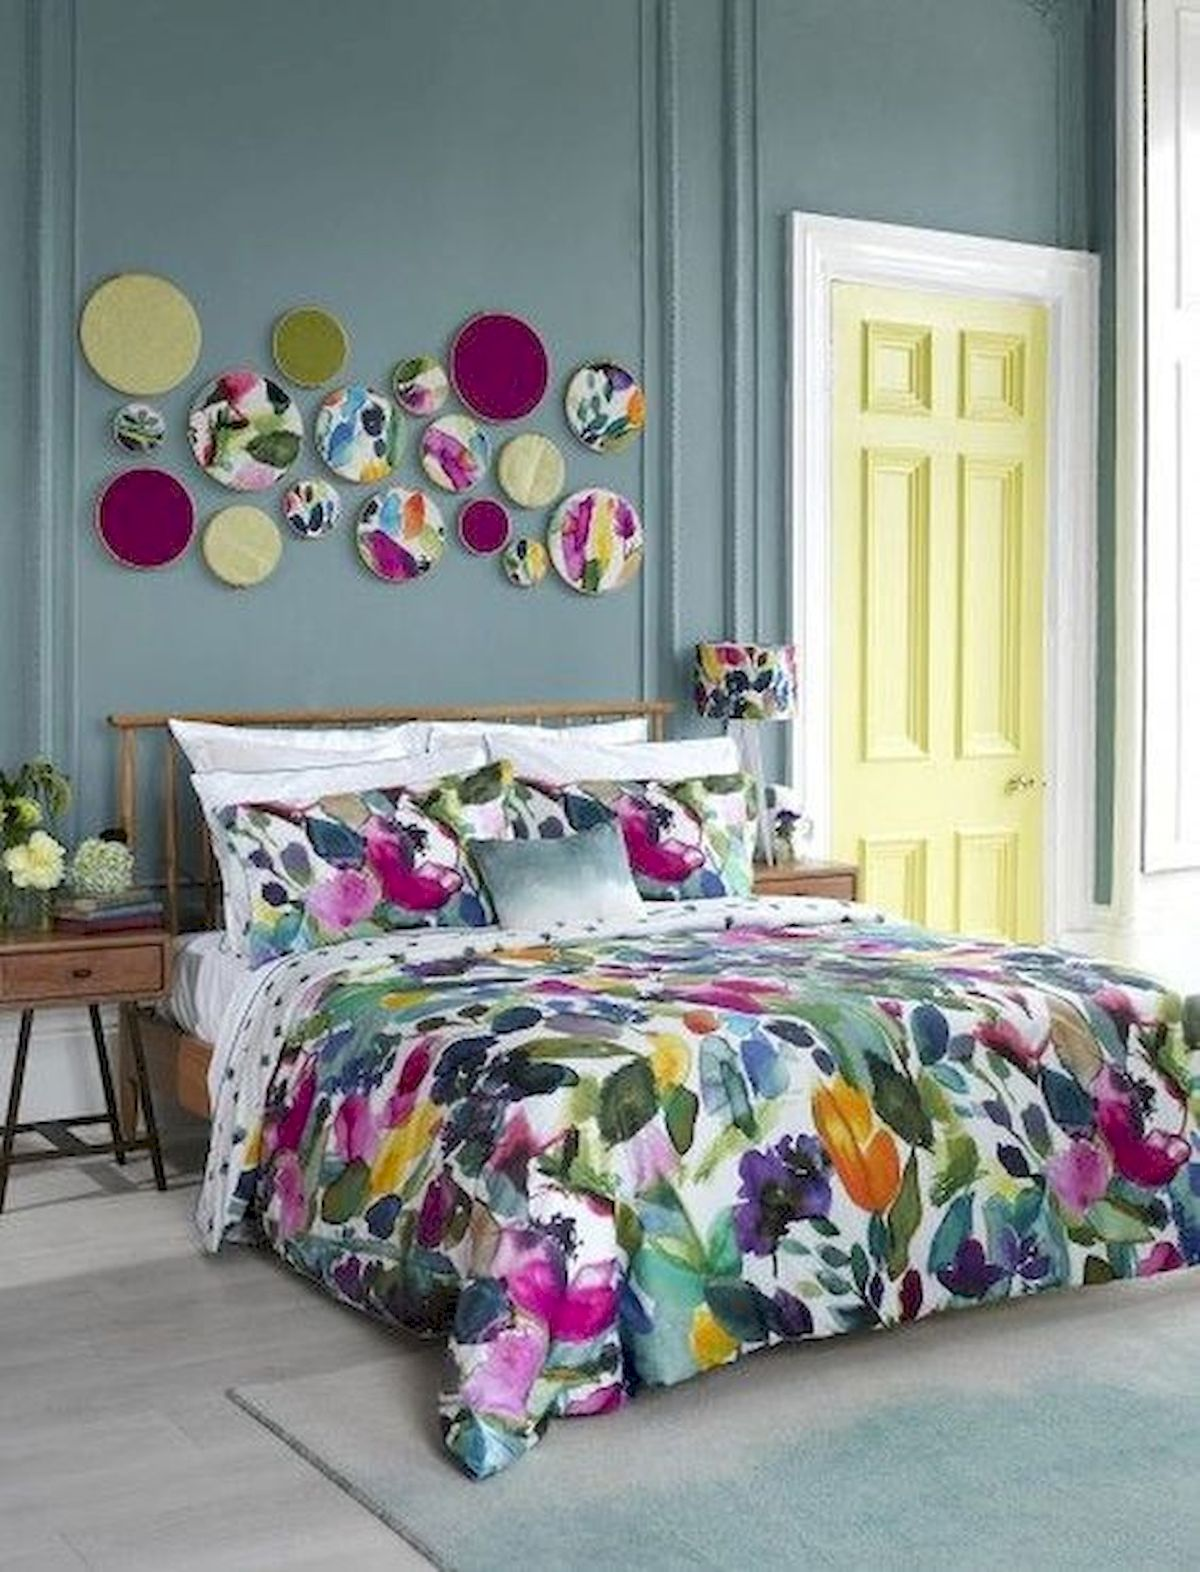 70 Awesome Colorful Bedroom Design Ideas and Remodel (20)